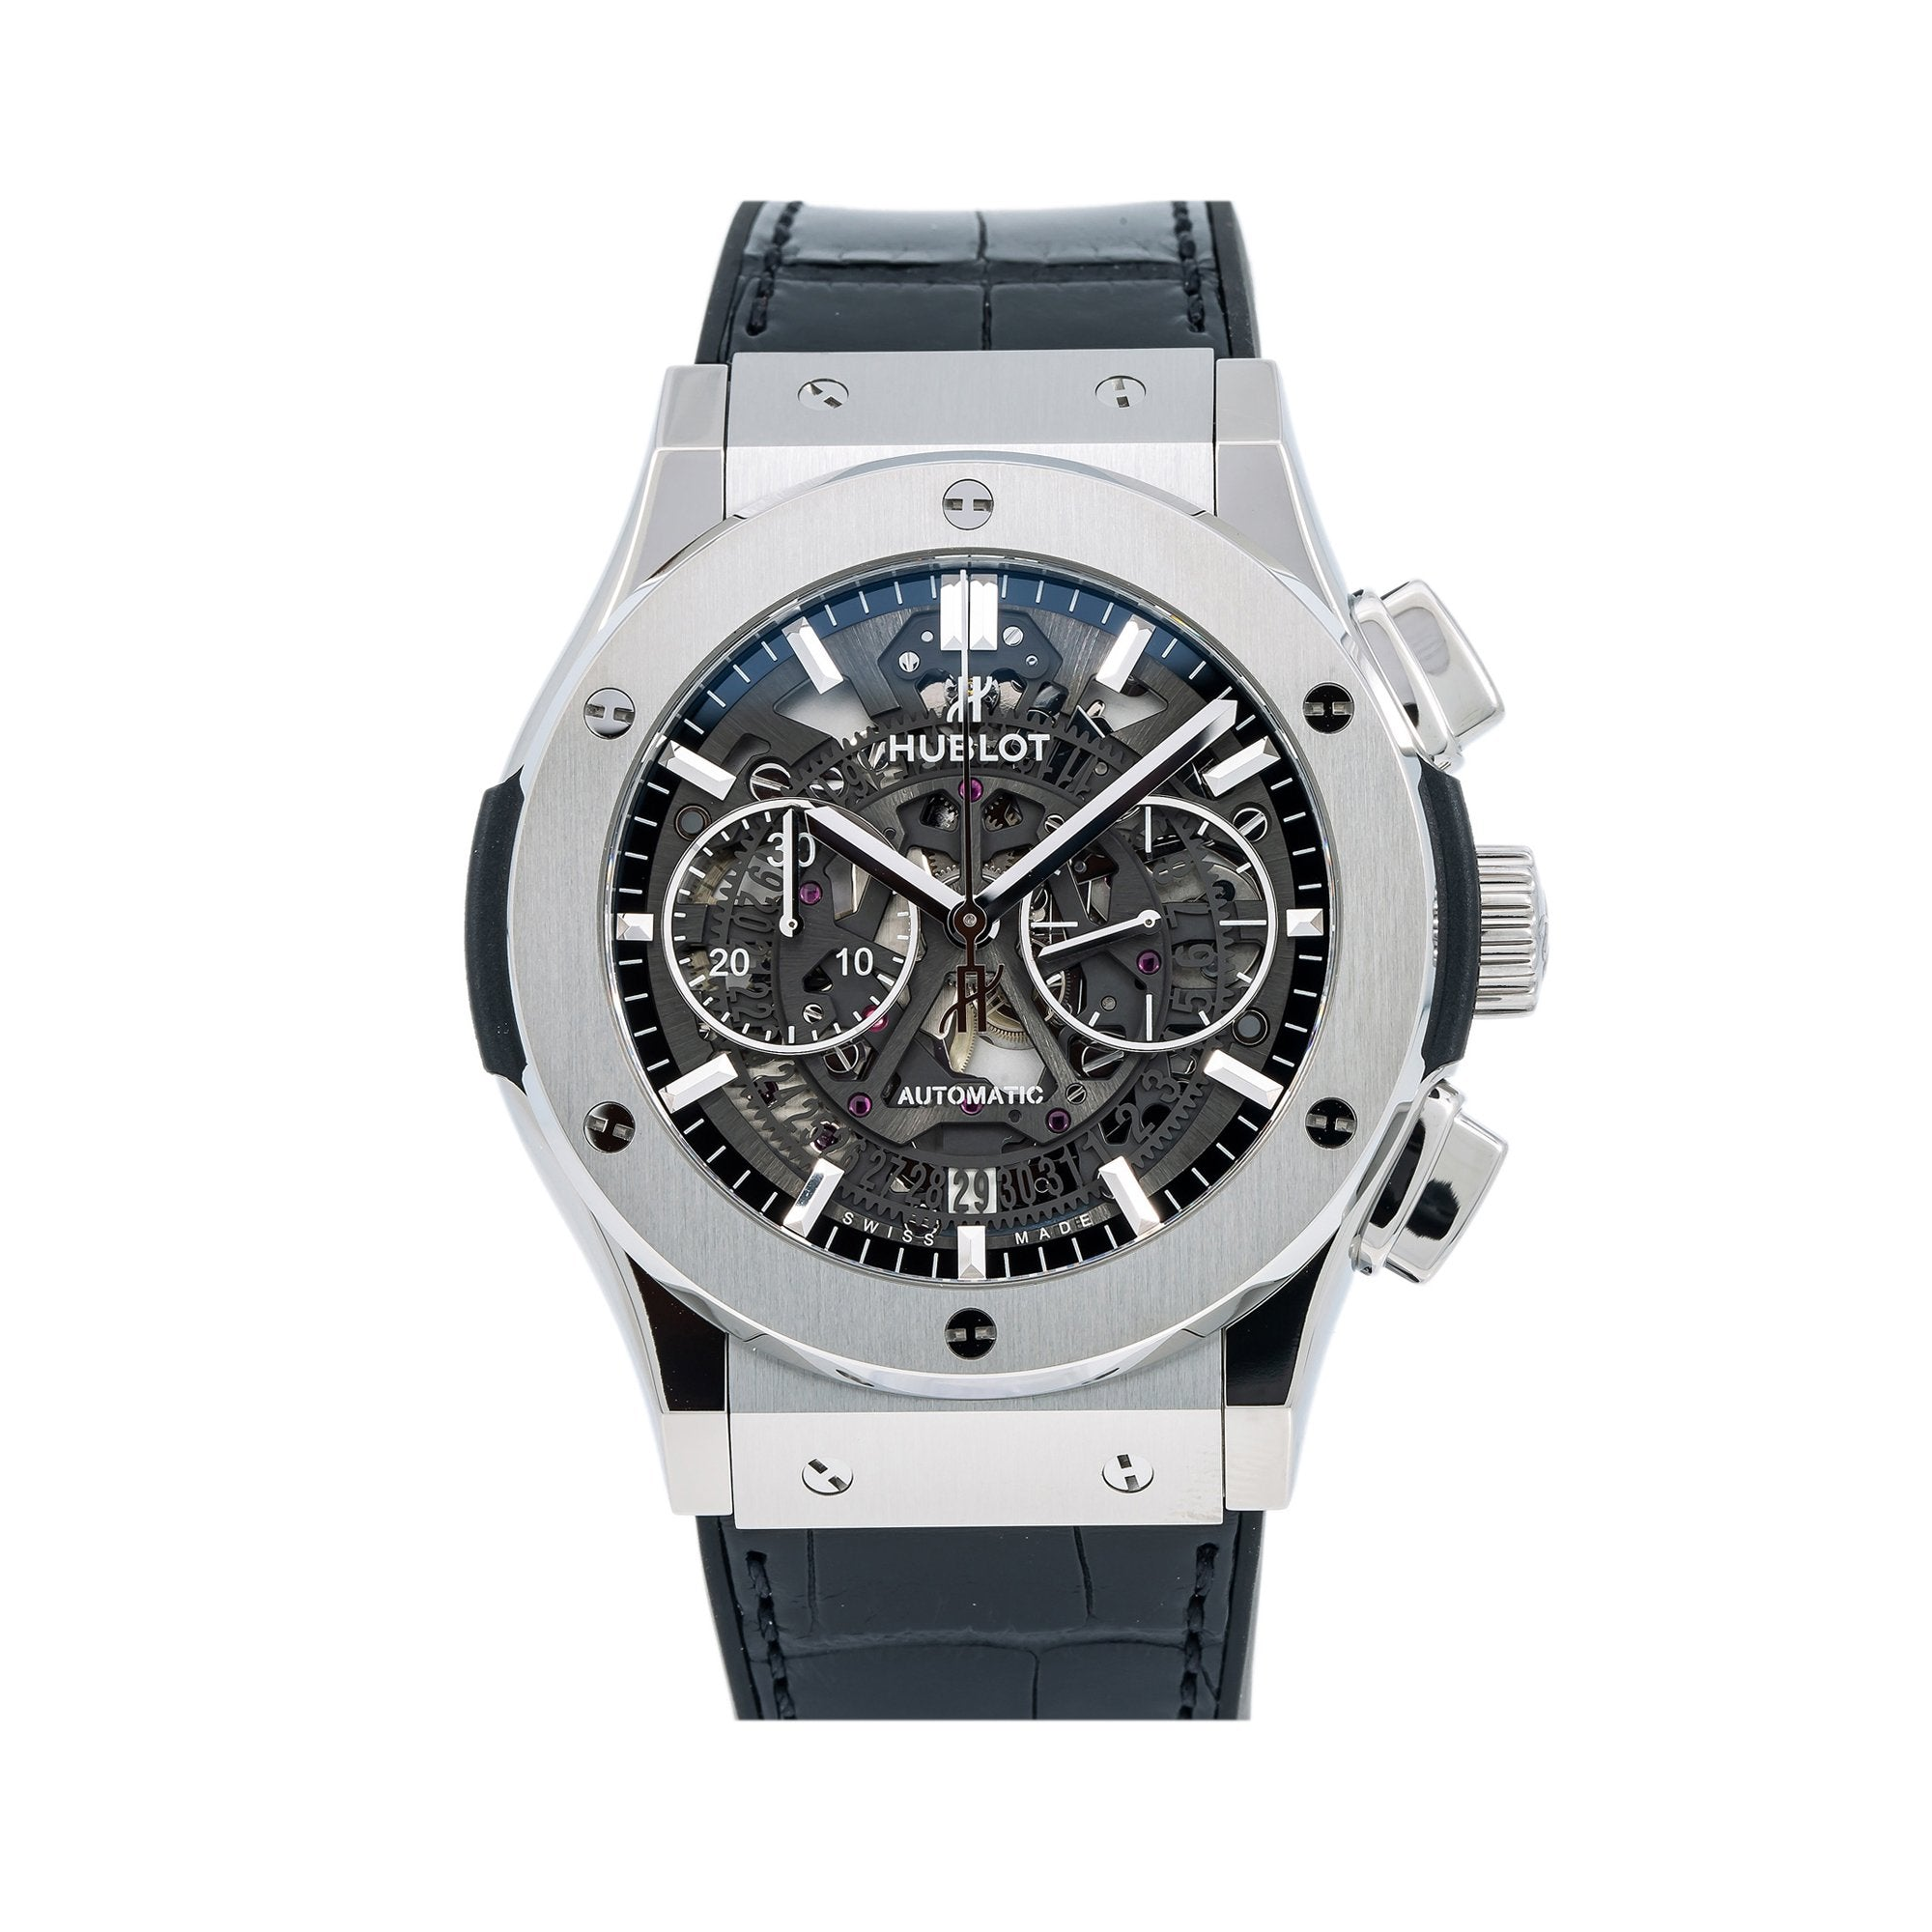 Hublot Classic Fusion Aerofusion 525.NX.0170.LR.12 45MM Black Dial With Leather Bracelet